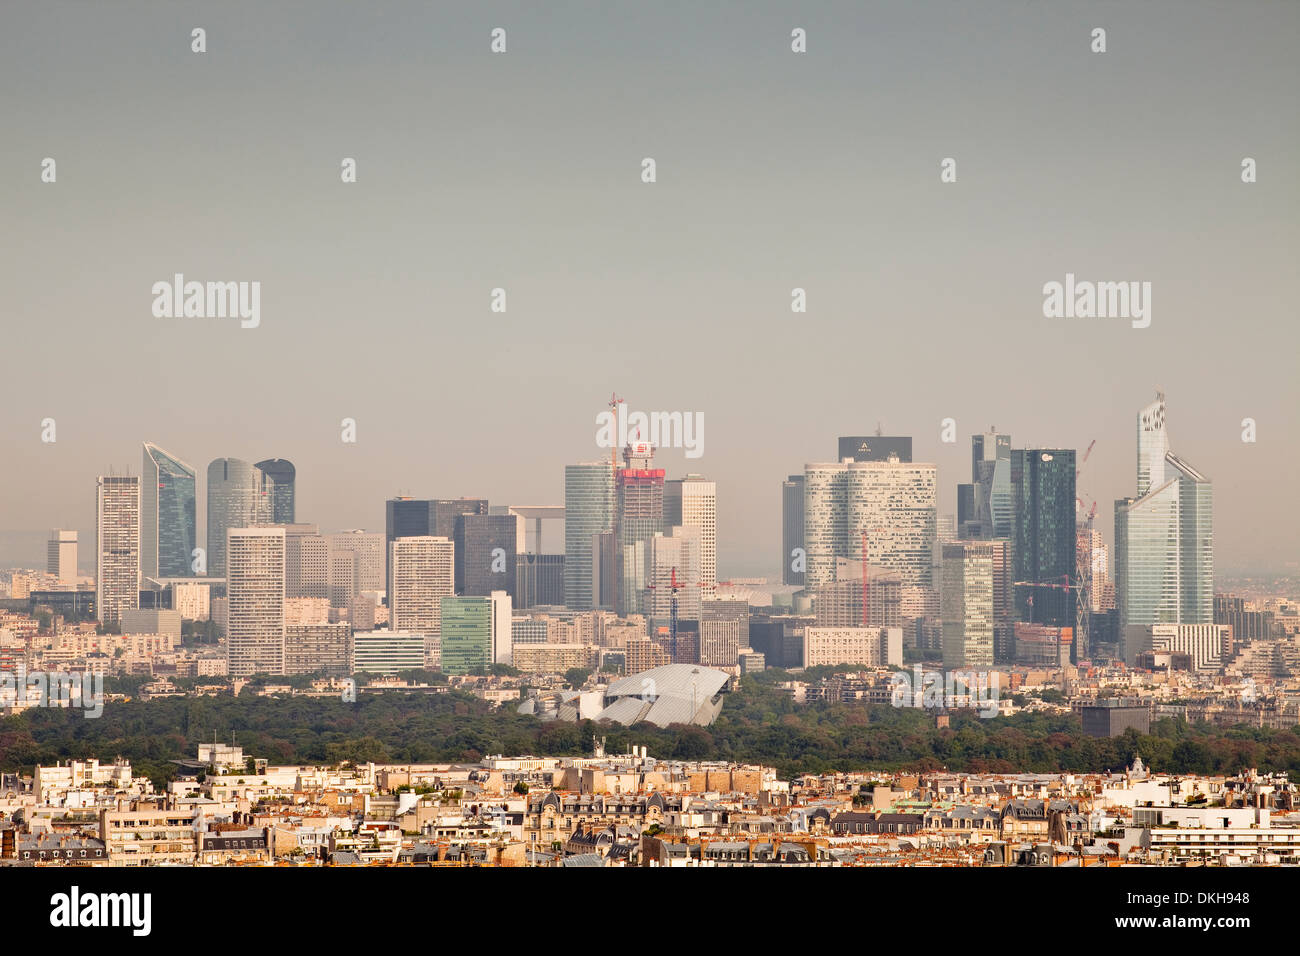 Skyscrapers in the La Defense district of Paris, France, Europe - Stock Image